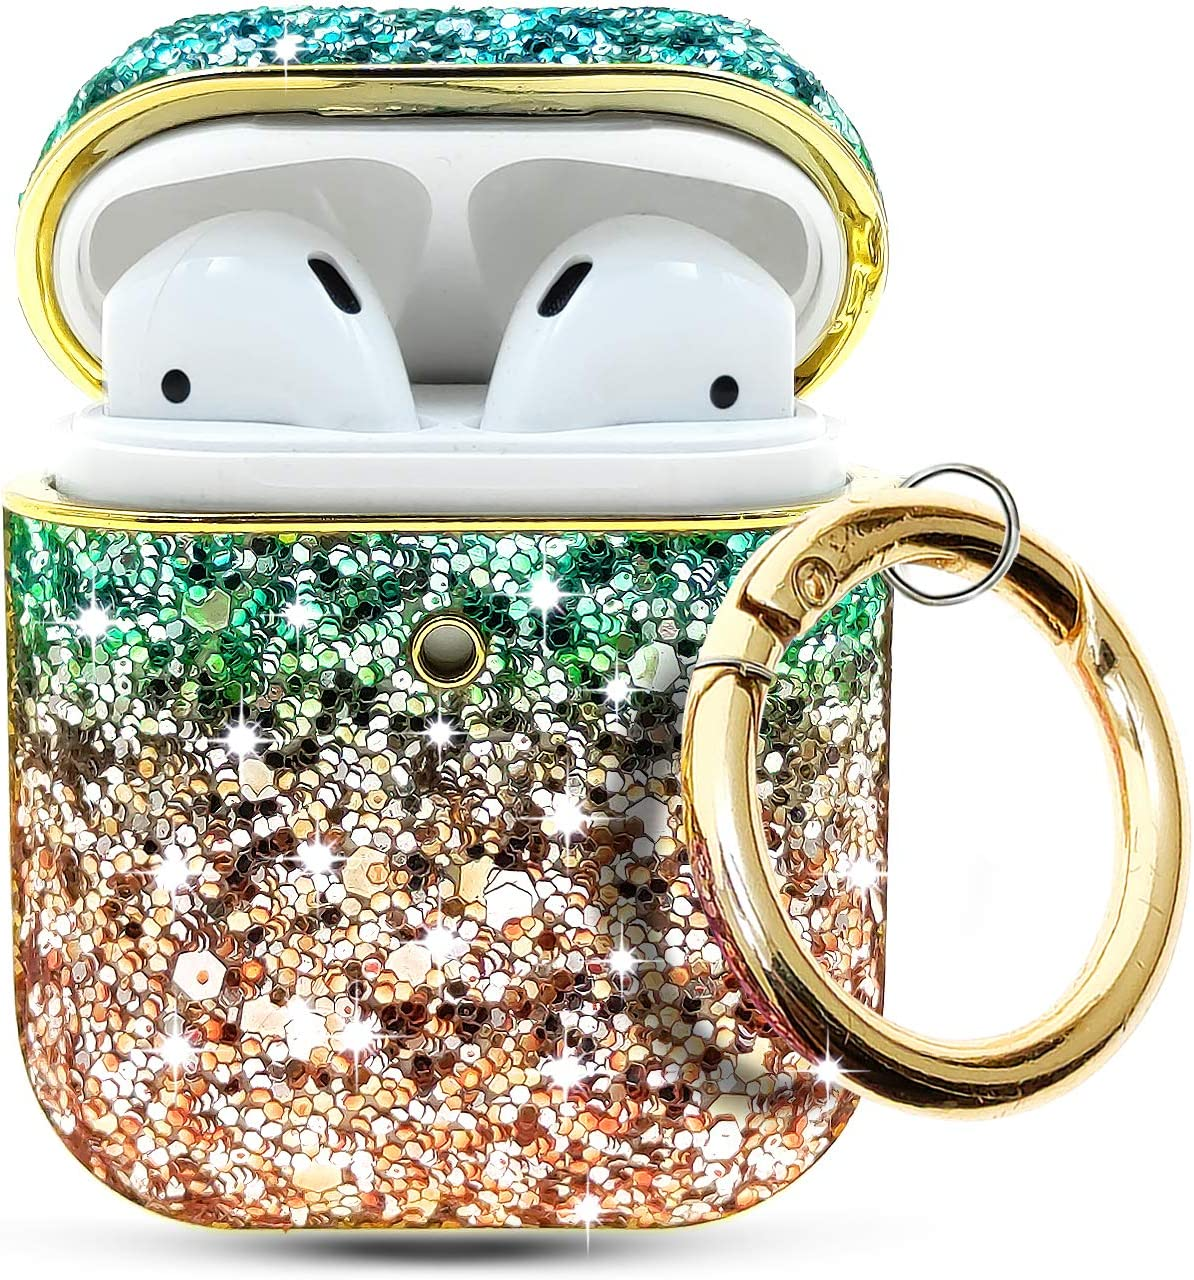 Hortory Luxury Rhinestone Airpods Case with Keychain and Glitter Neck Strap, Cute Bling Diamonds Leather Air Pod Cases Compatiable with Apple AirPods Case 1/2 (Golden)